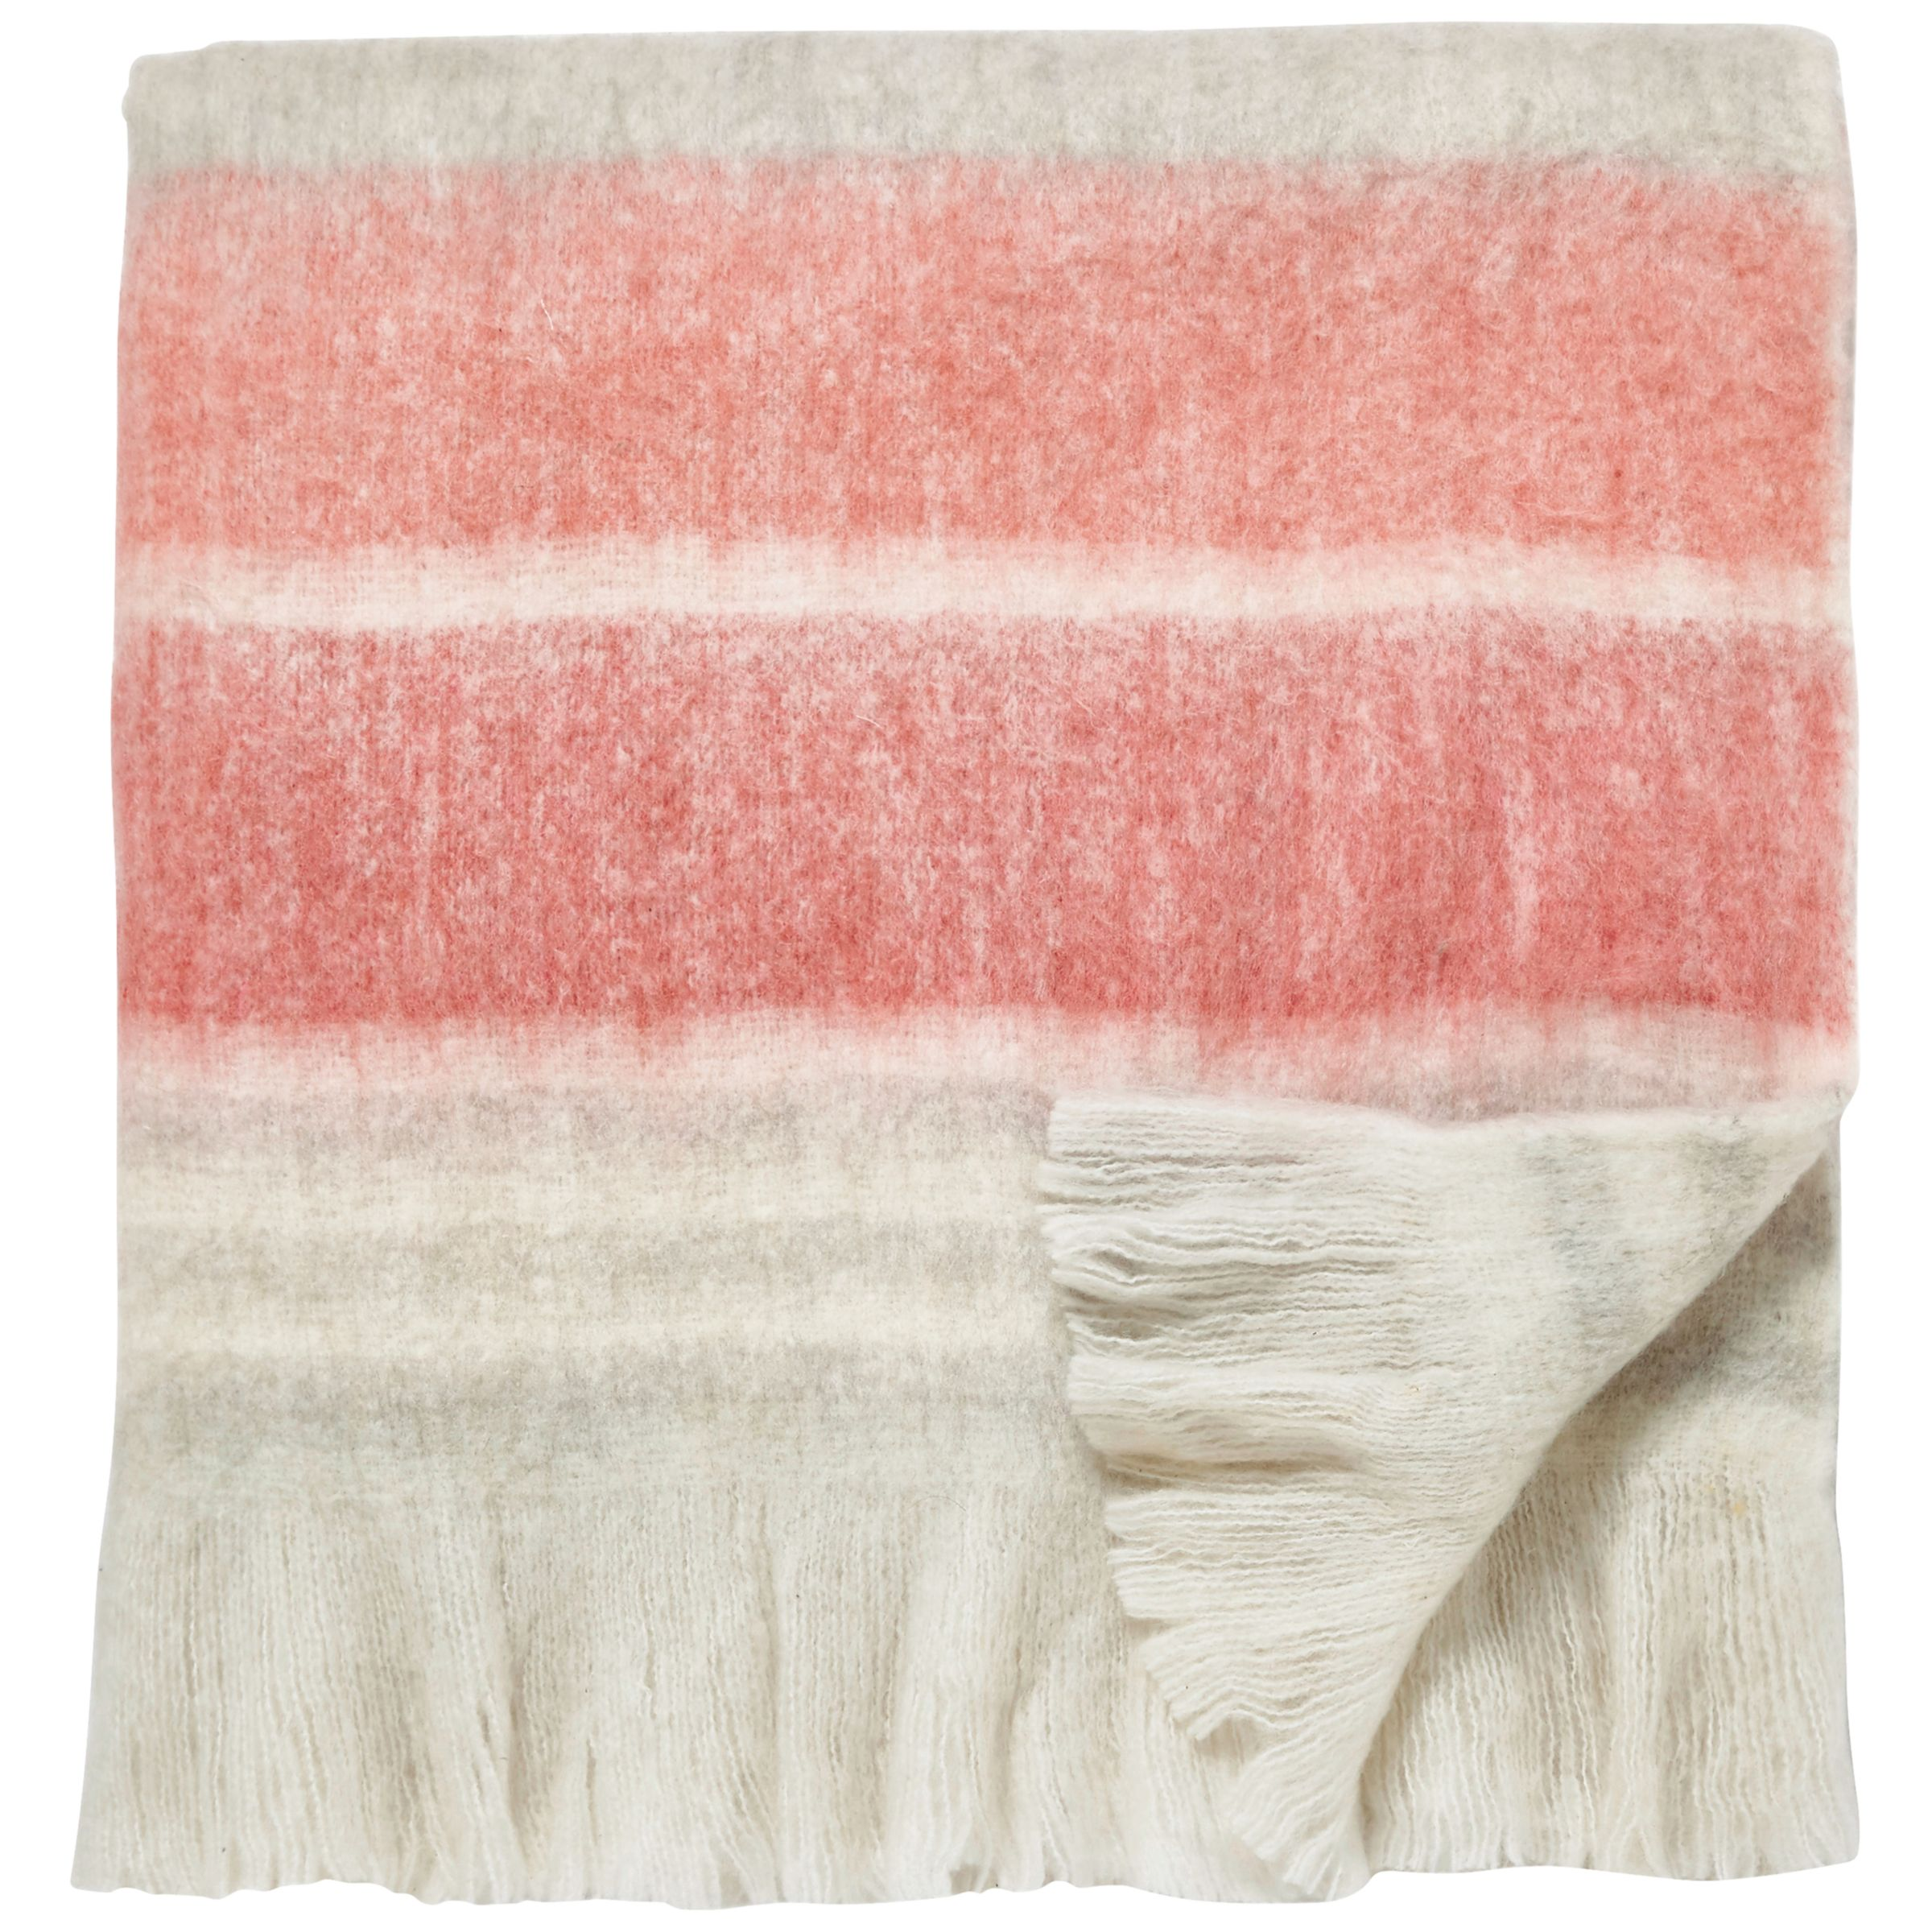 Sanderson Sanderson Magnolia Throw